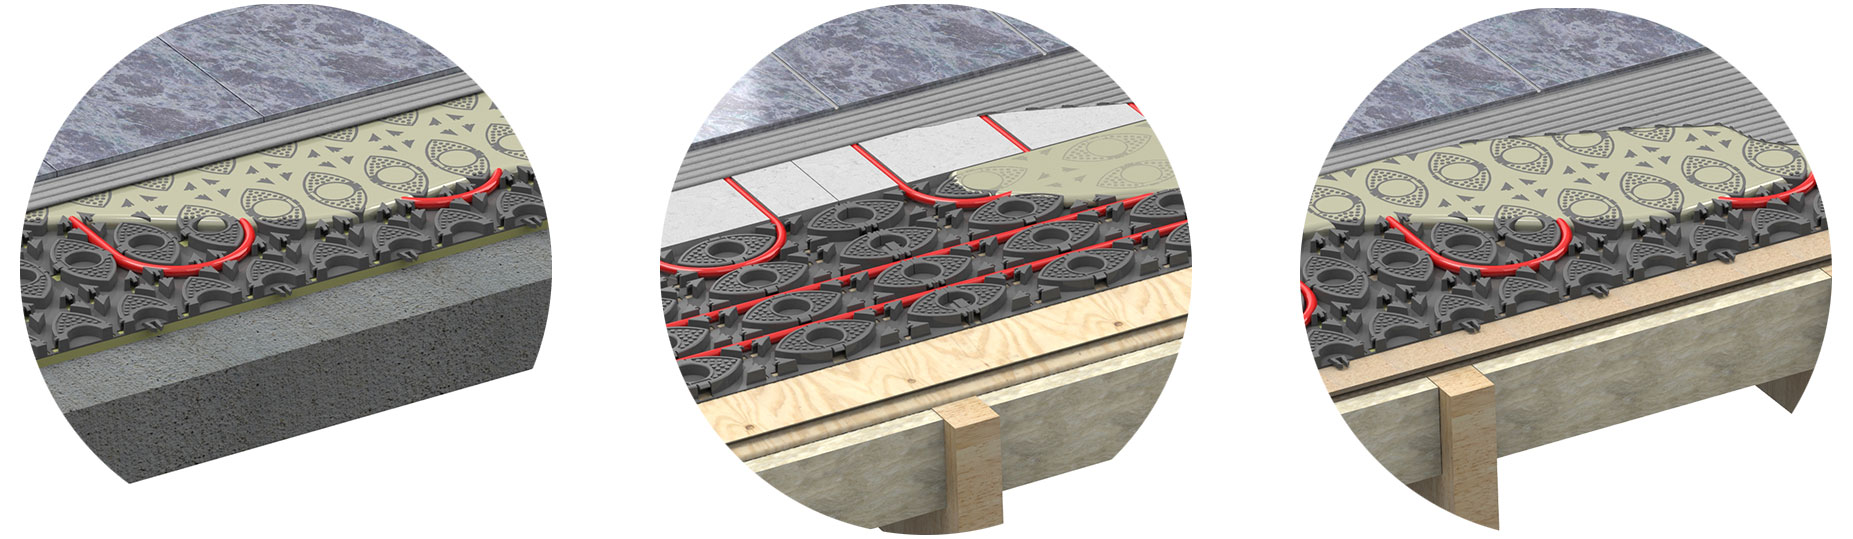 Retro fit low profile underfloor heating systems